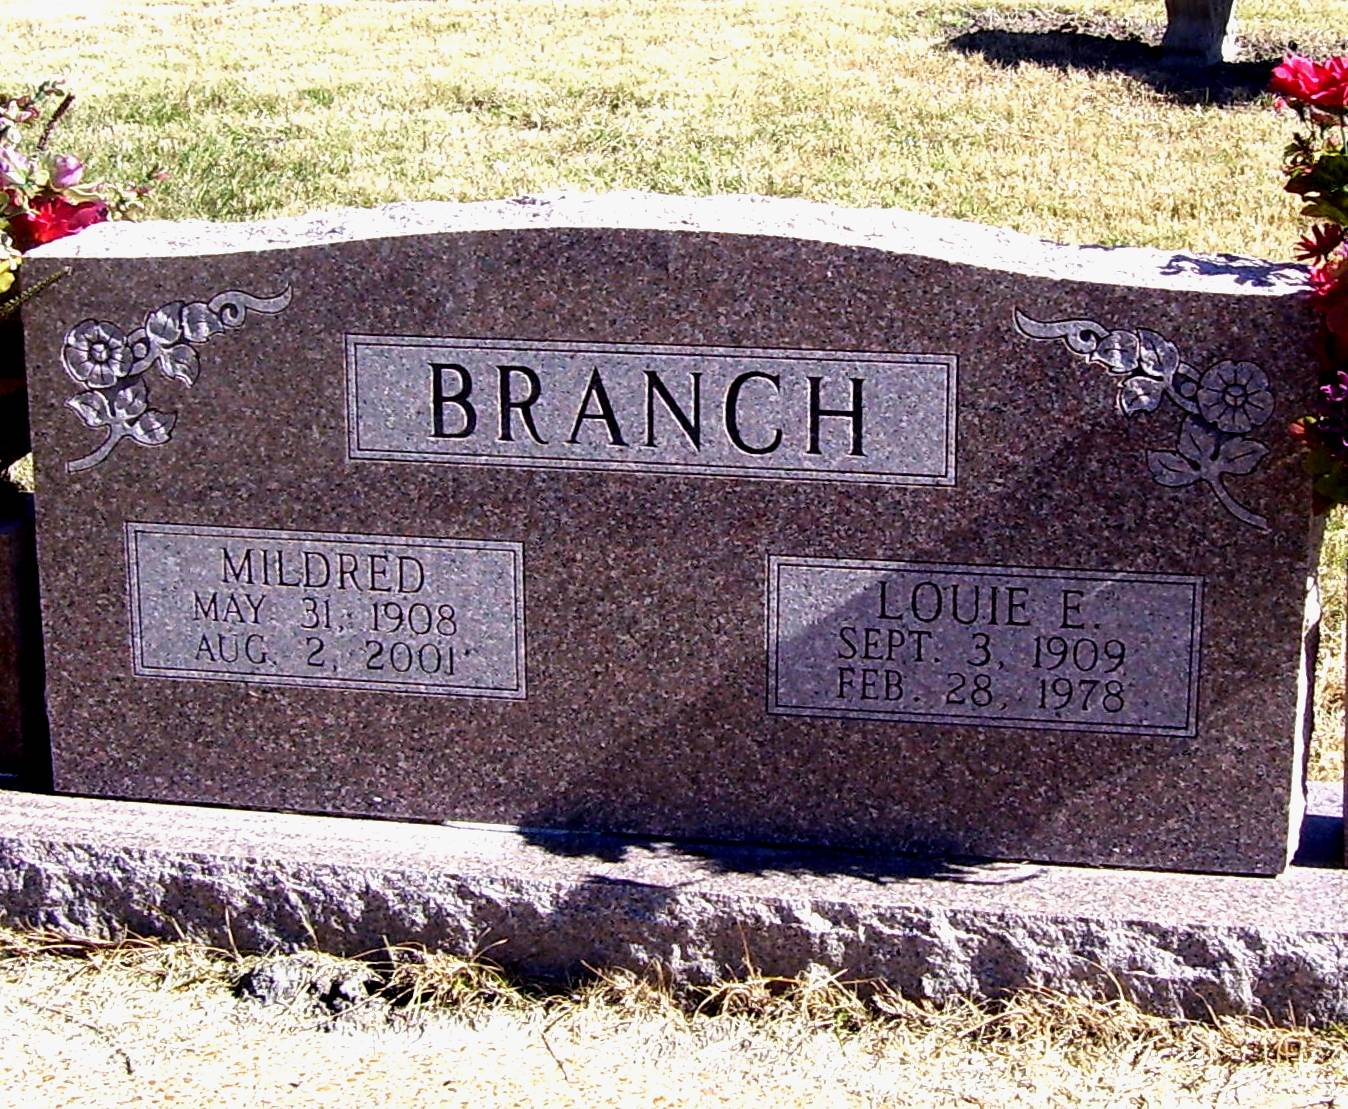 aa-mildred-branch-grave.jpg